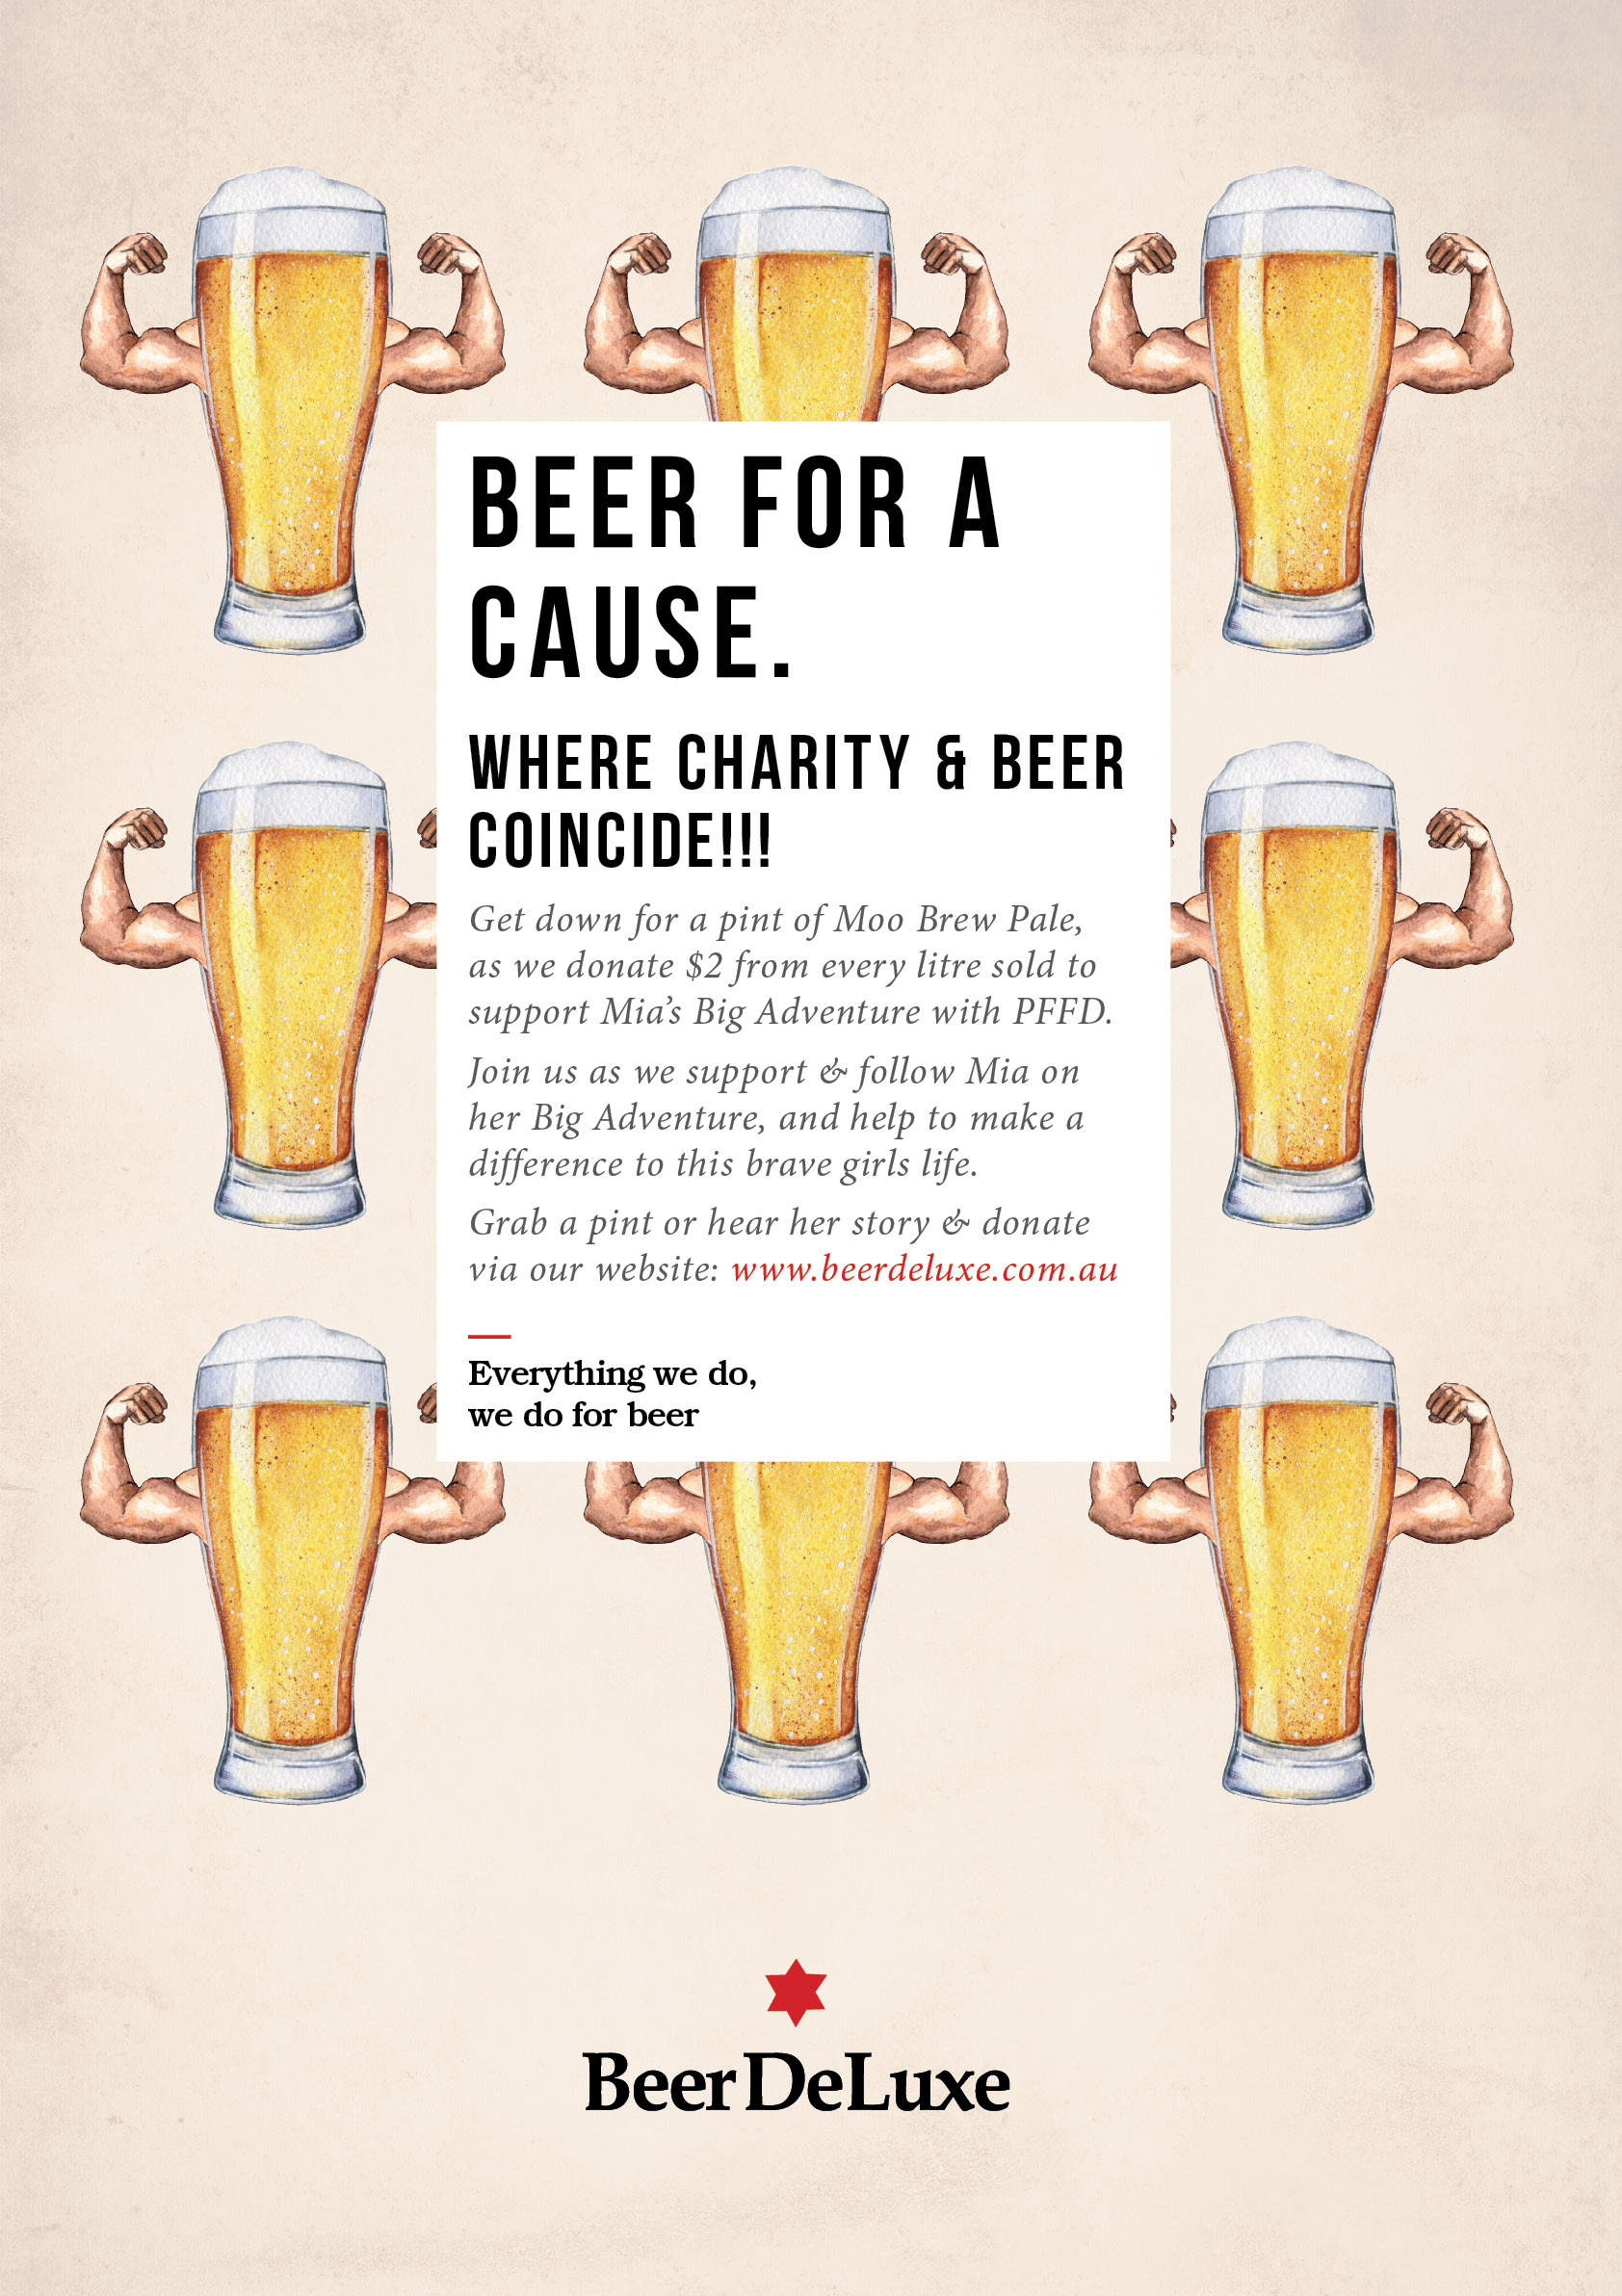 Beer for A Cause - Mia's Big Adventure